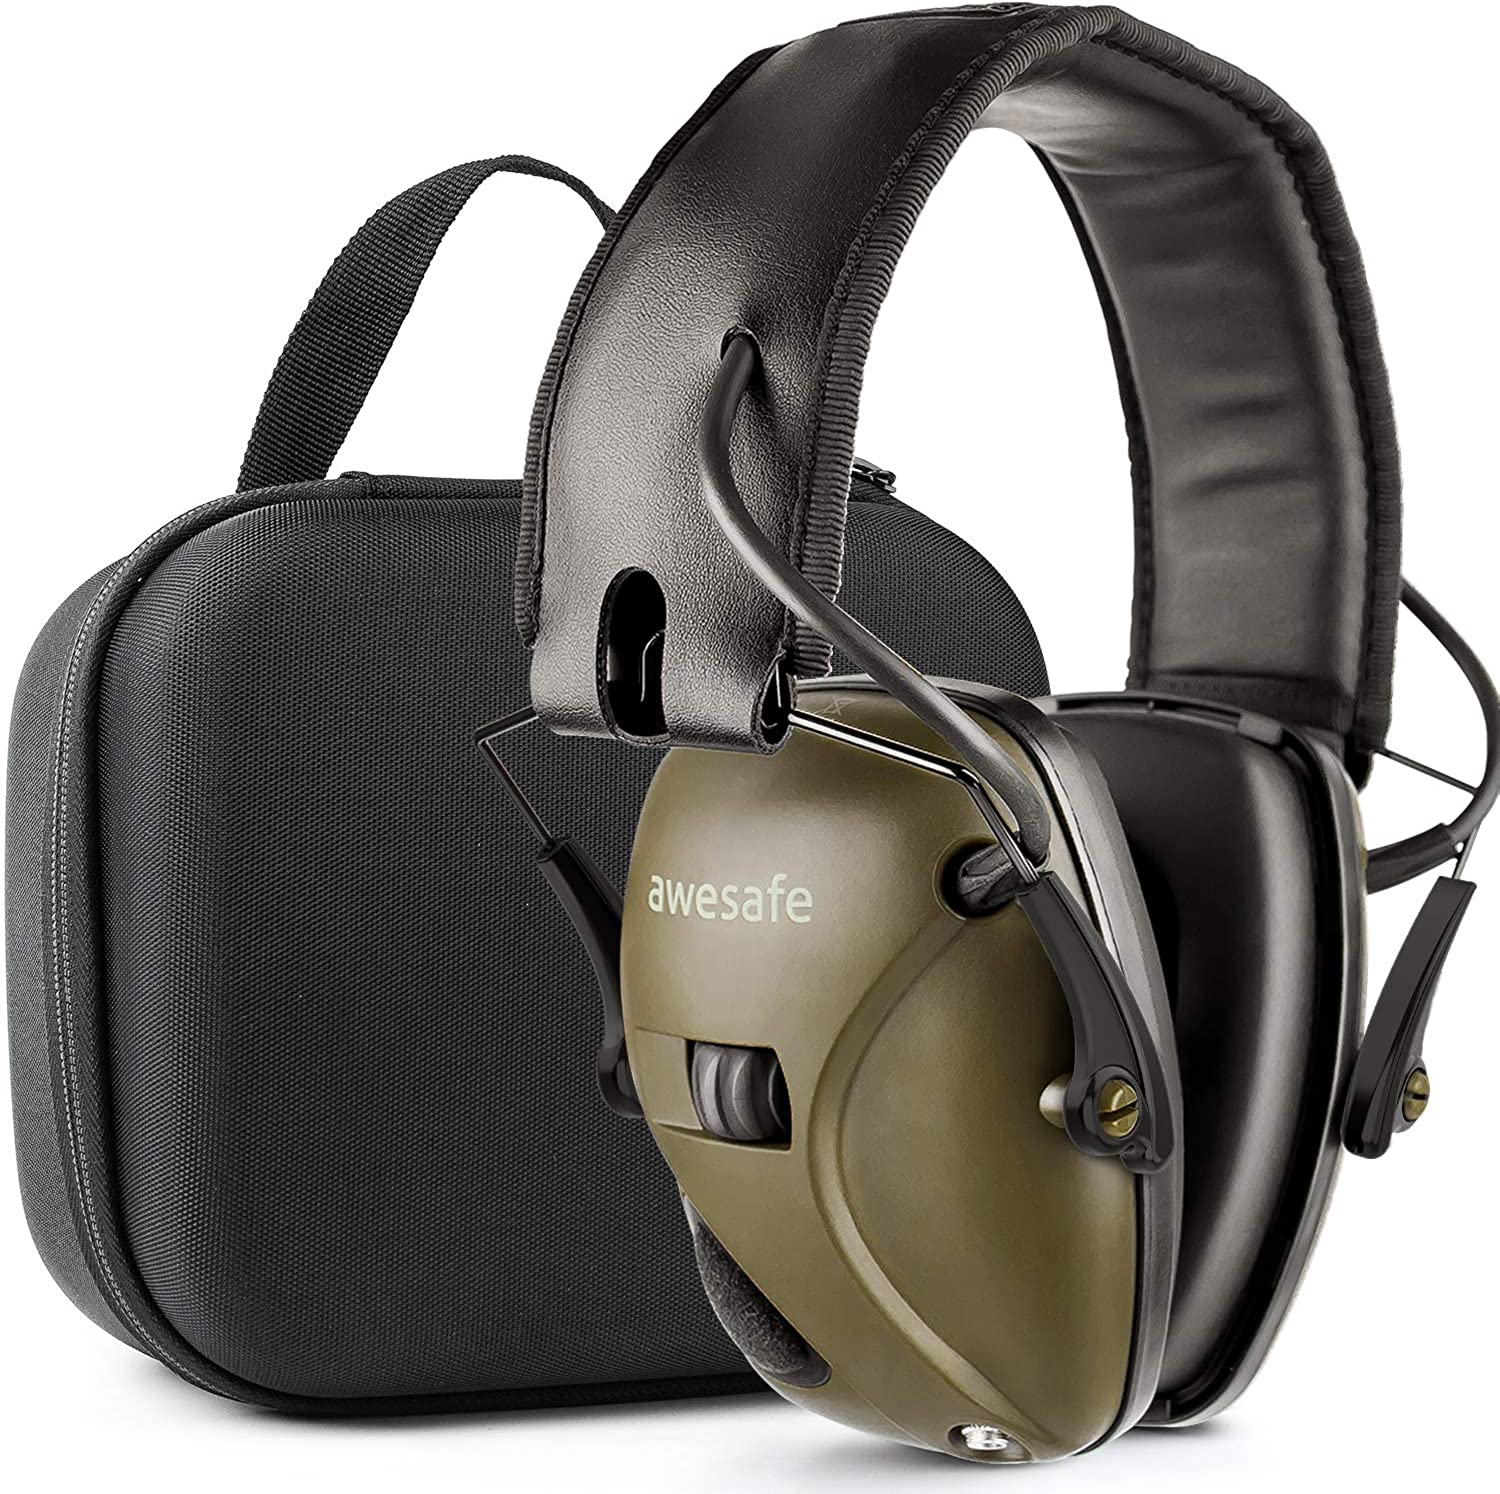 awesafeus Shooting earmuffs Ear Protection with Storage Case